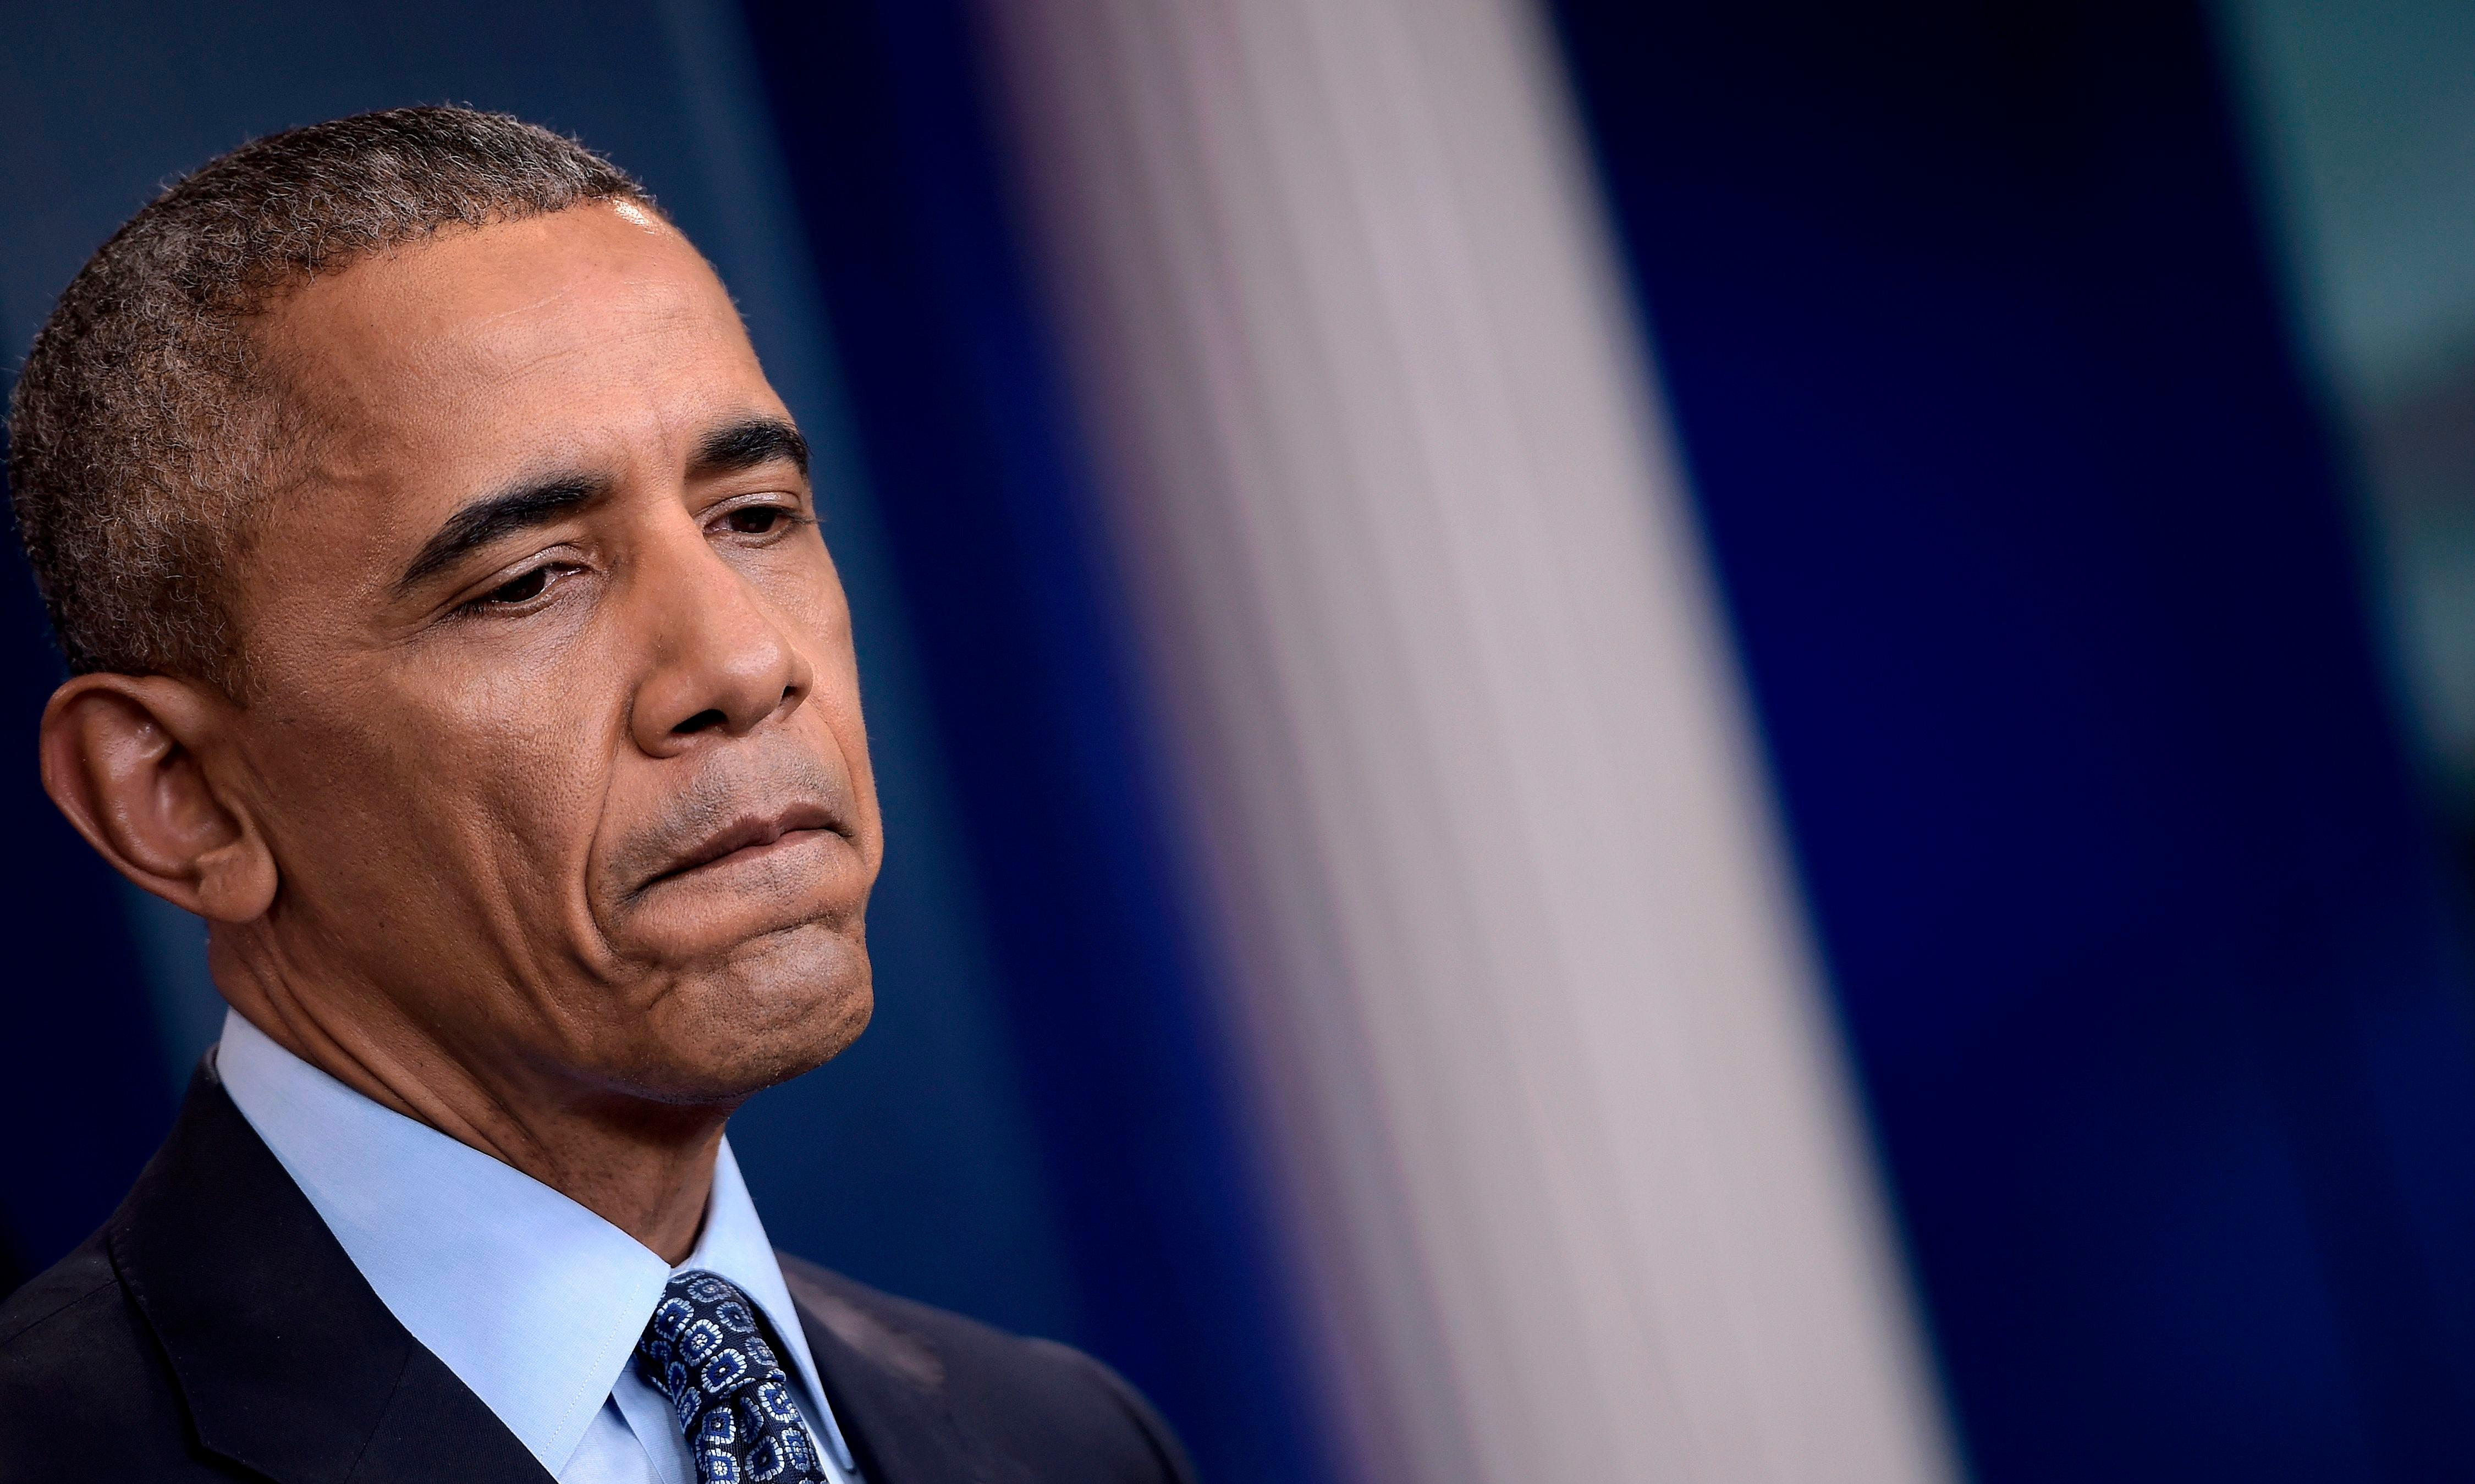 Judge who ruled against ACA has blocked other Obama policies